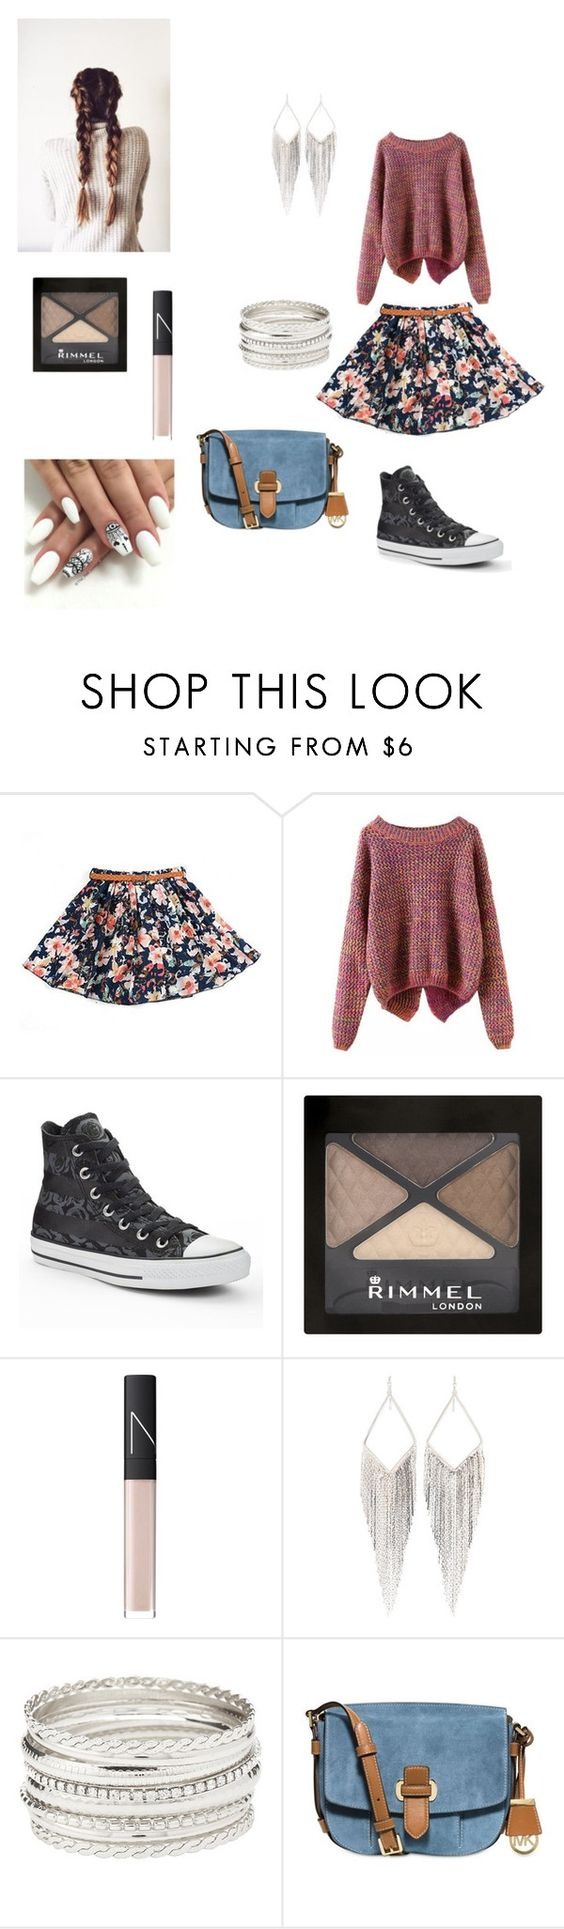 """Daisy Casual Test"" by jacquelinethomas-om ❤ liked on Polyvore featuring Converse, Rimmel, NARS Cosmetics, Jules Smith, Charlotte Russe and MICHAEL Michael Kors"